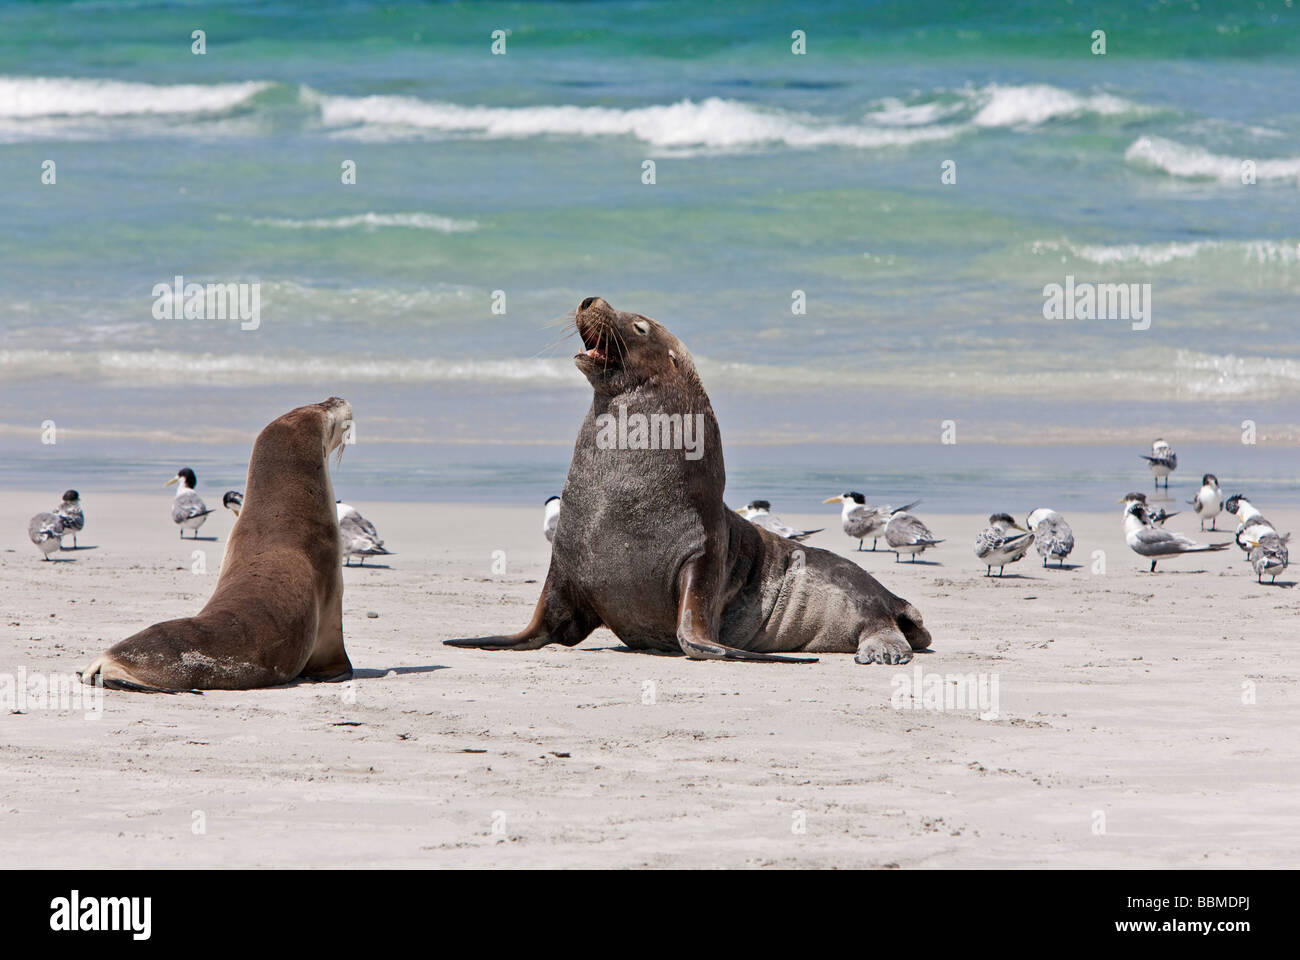 Australia, South Austrailia. A male Australian Sea Lion guards a female until she comes into oestrus. Stock Photo